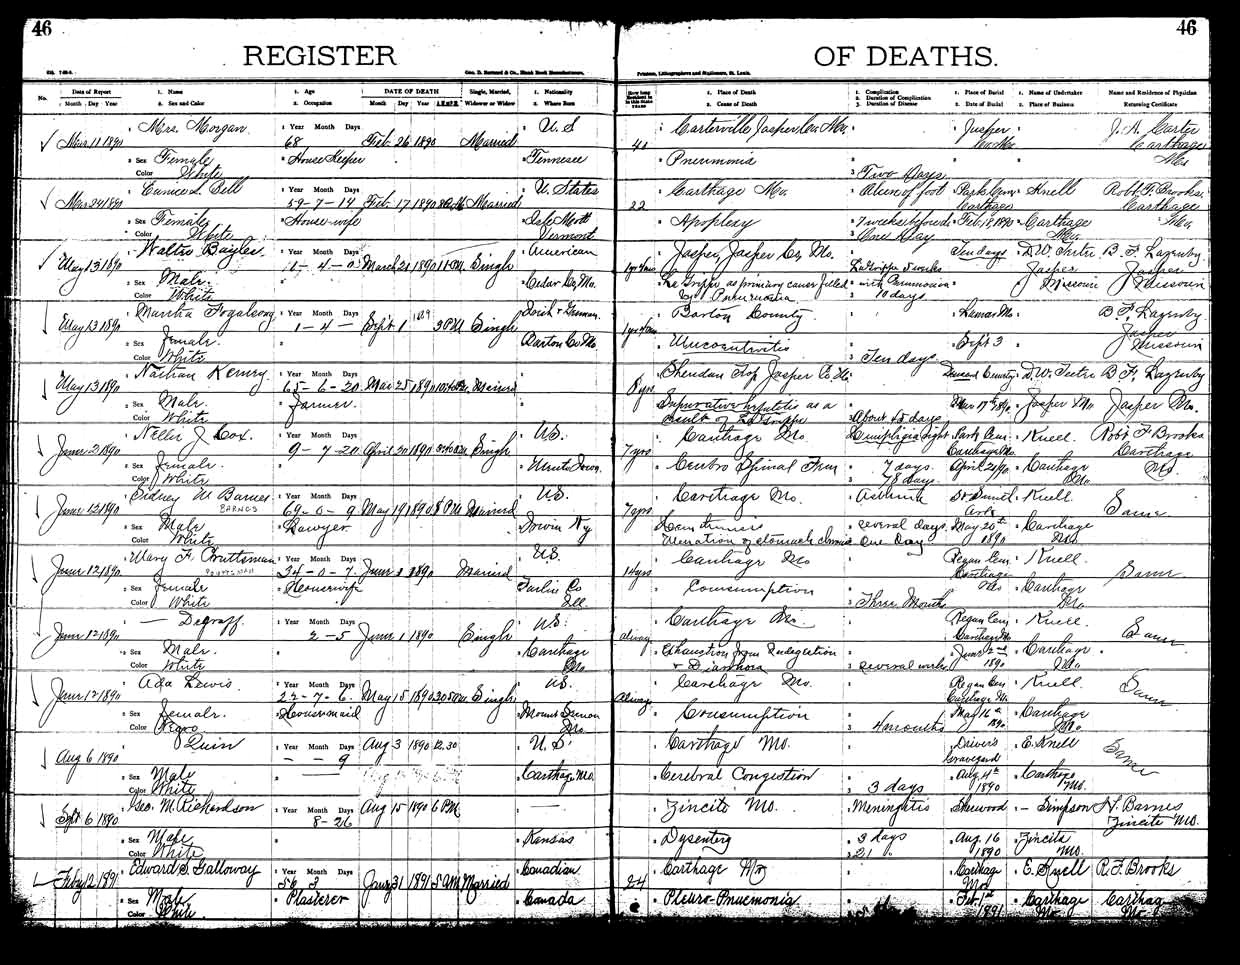 Vital Records Birth Certificate Awesome Missouri Digital Heritage Birth And Death Records